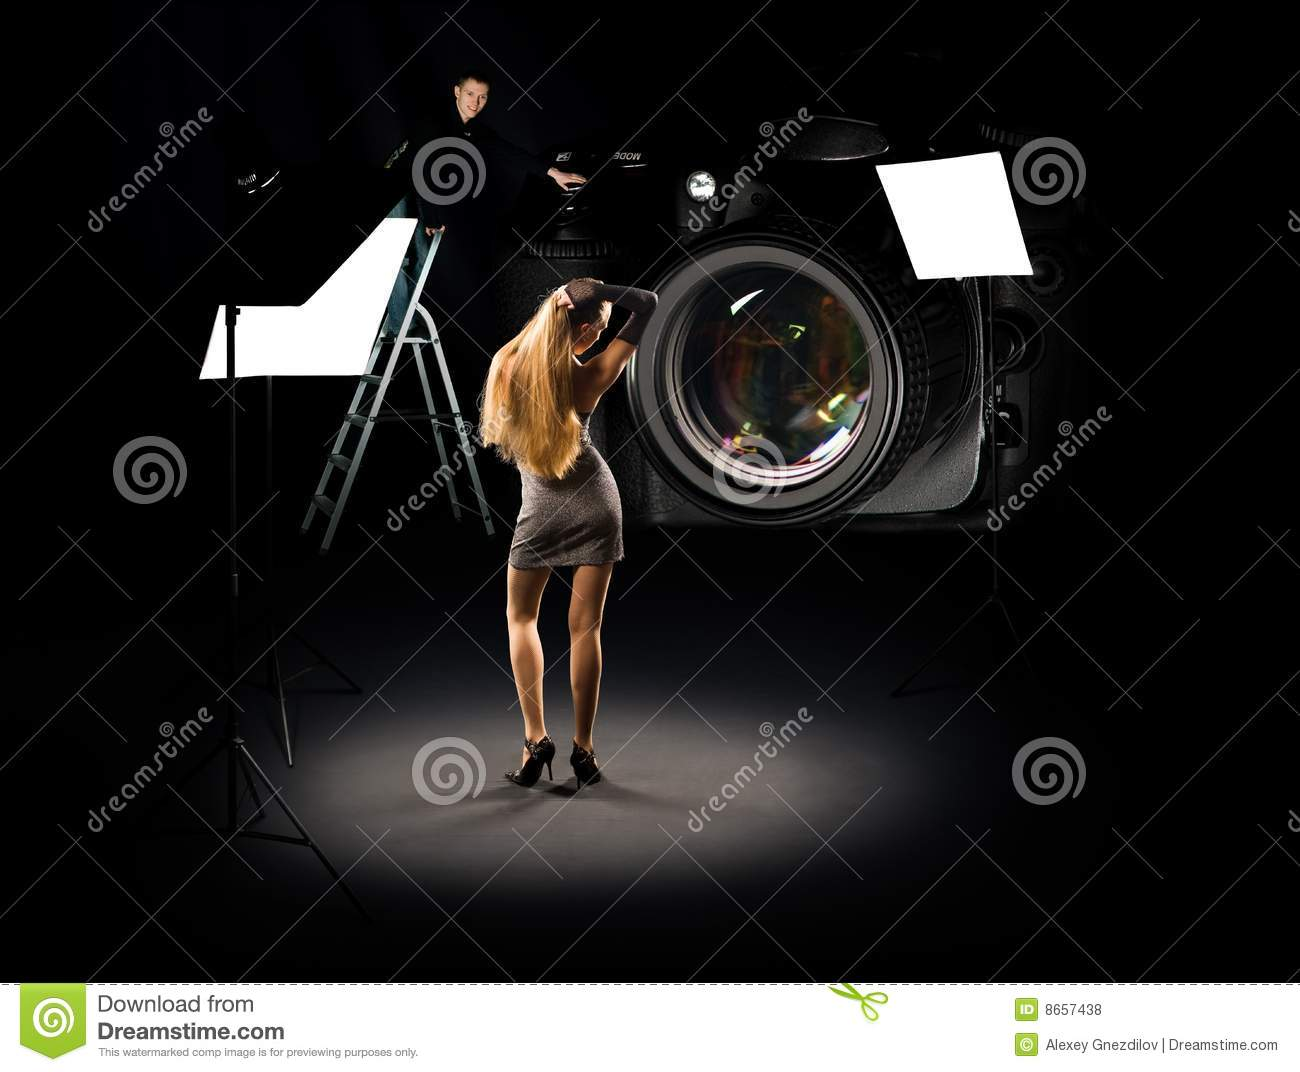 Humorous collage of photographer and model